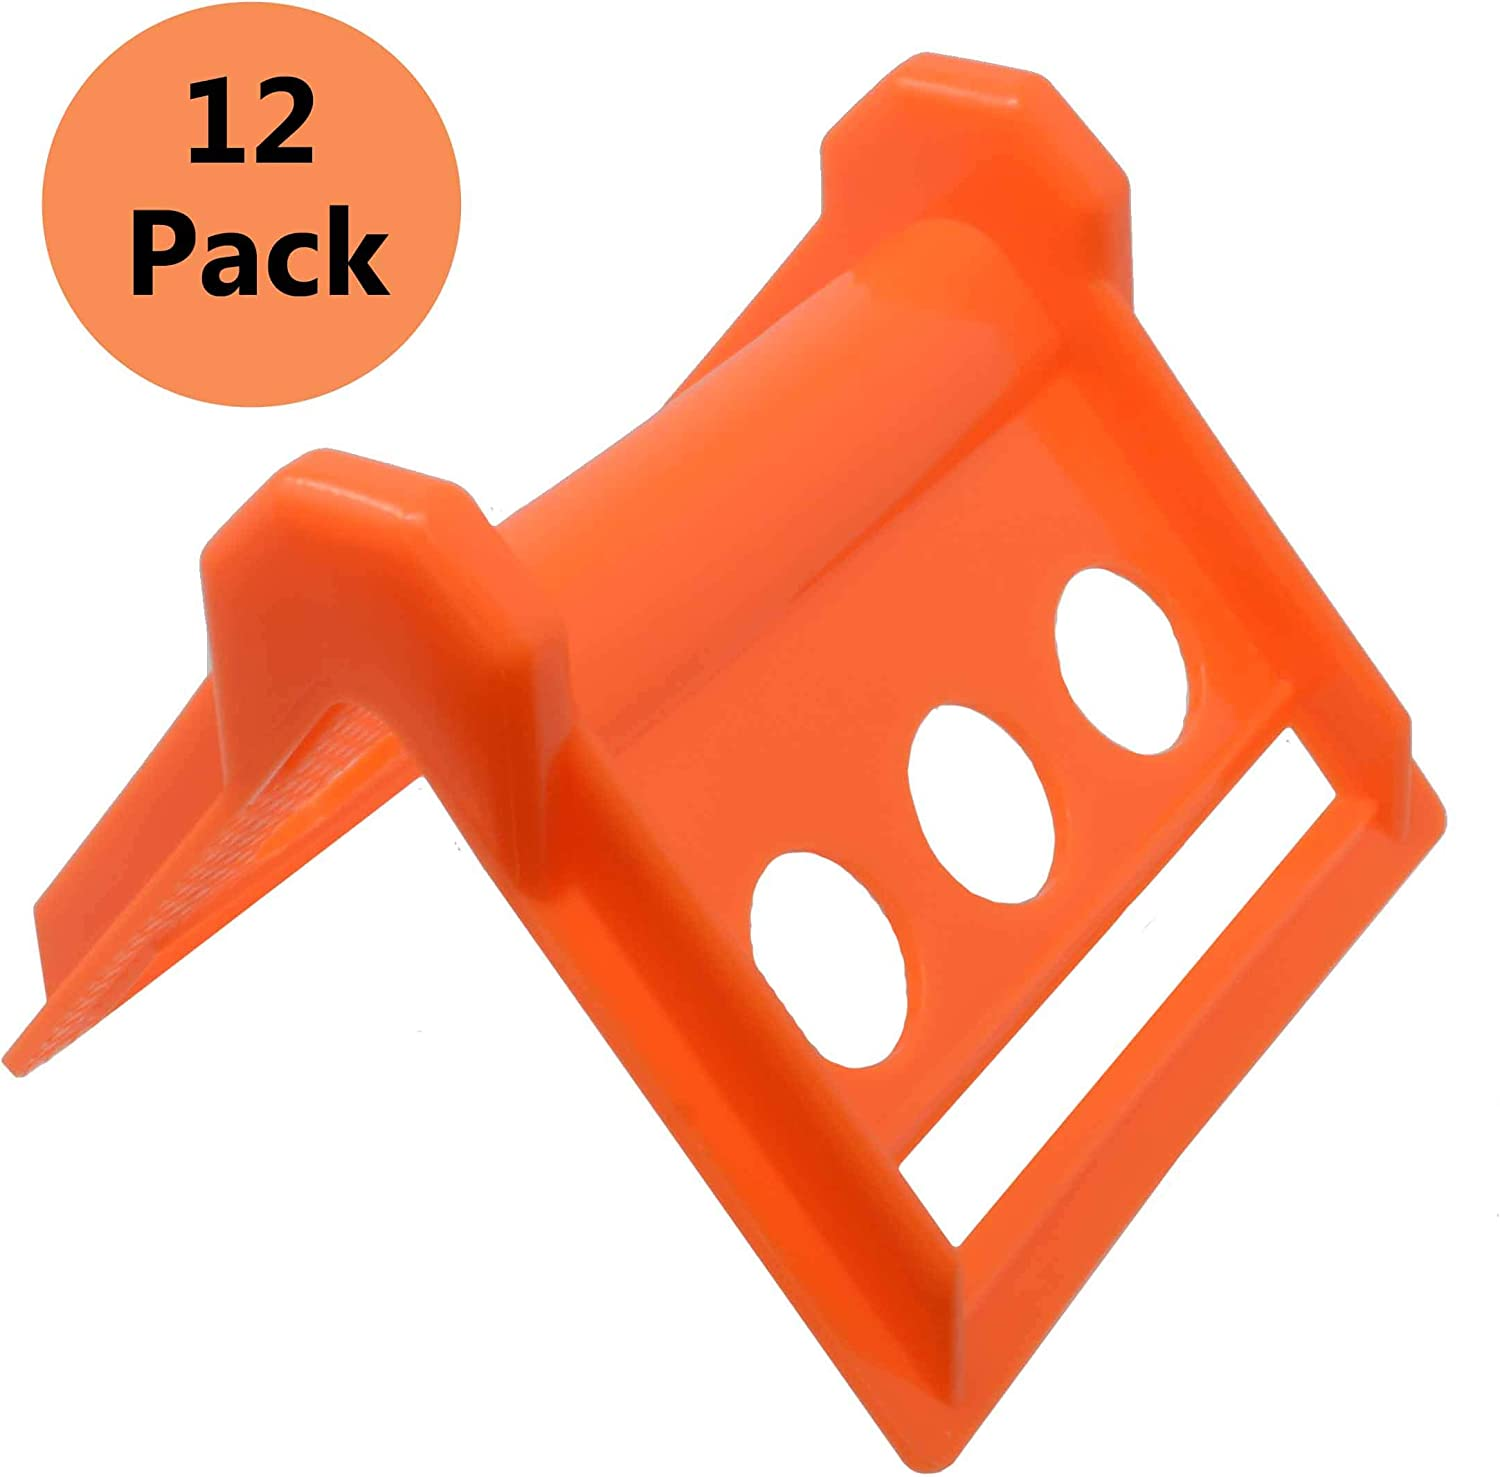 Vee Boards Load Protectors Pallet Edge Protector Corners Guard The Cargo and Straps from Damage or Wear in Shipping Flatbed Strap Corner Protectors 12 Pack Tie Down Strap Protectors